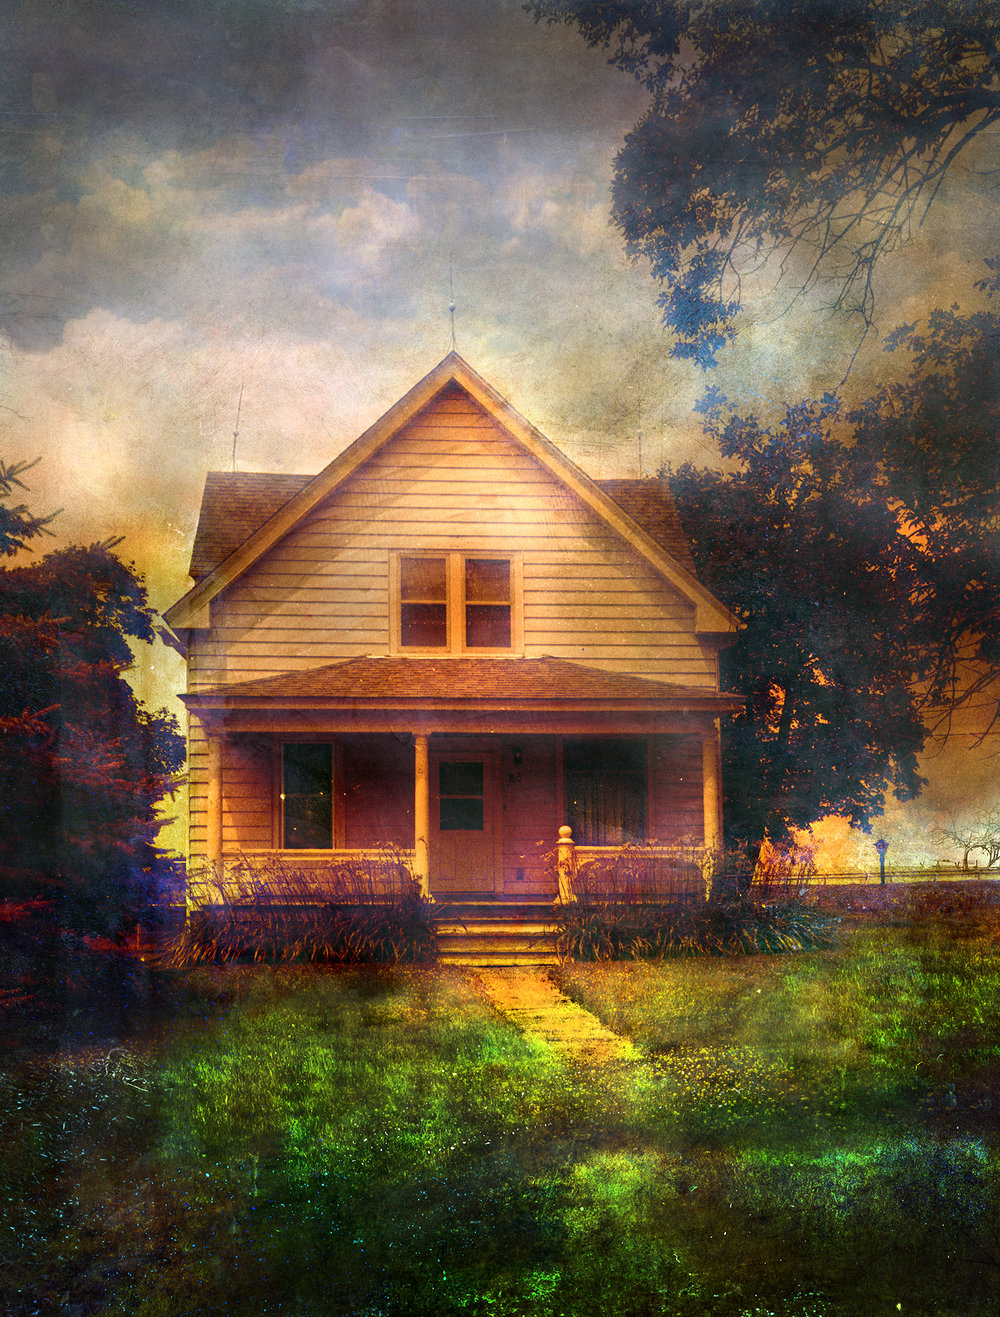 Iowa House In Morning Light  mixed media on panel 65 x 48 inches